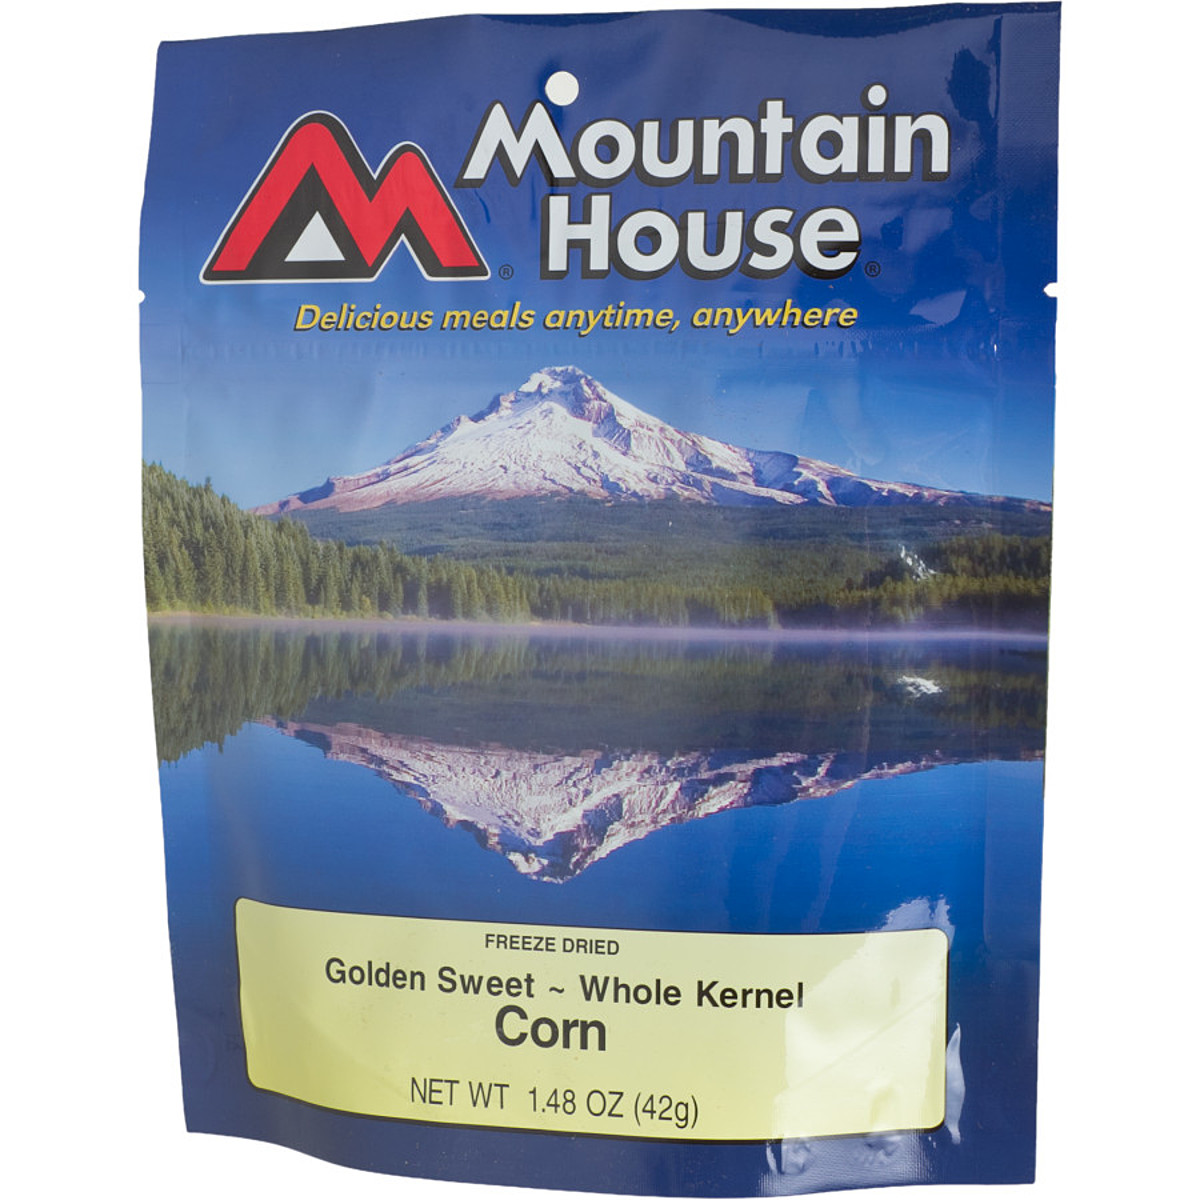 Mountain House Golden Sweet Whole Kernel Corn